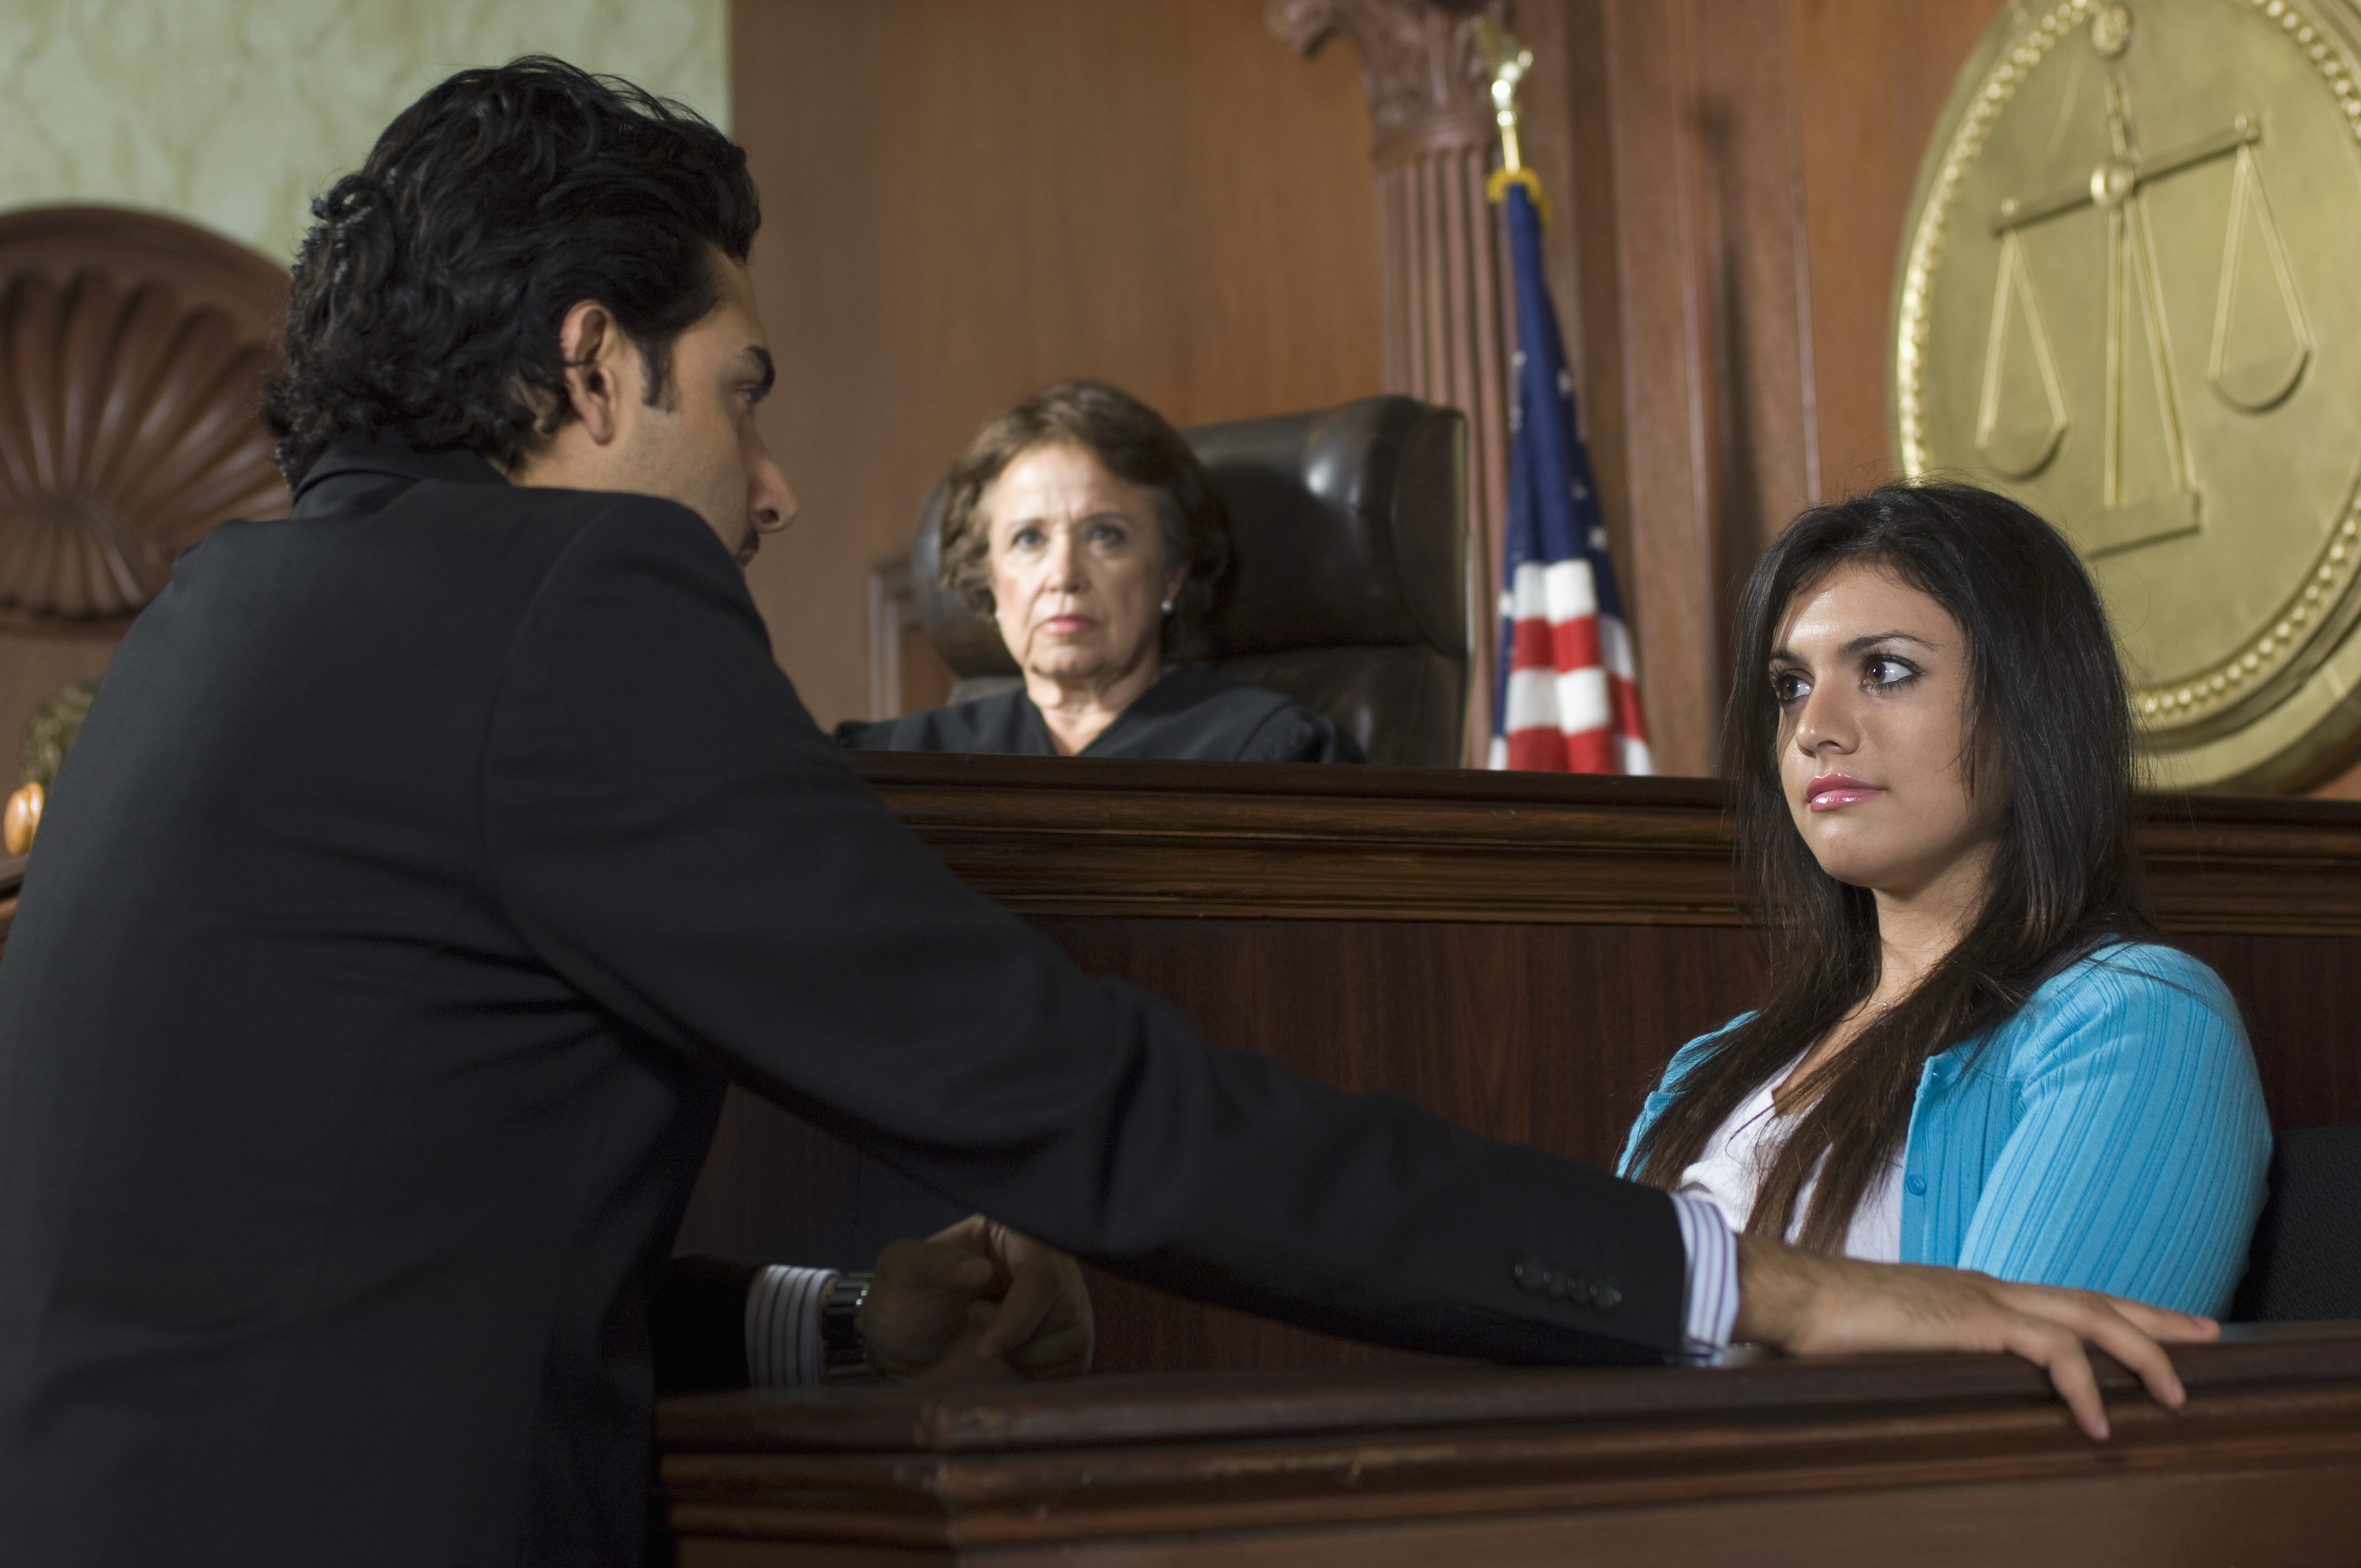 witness-testifying-in-court